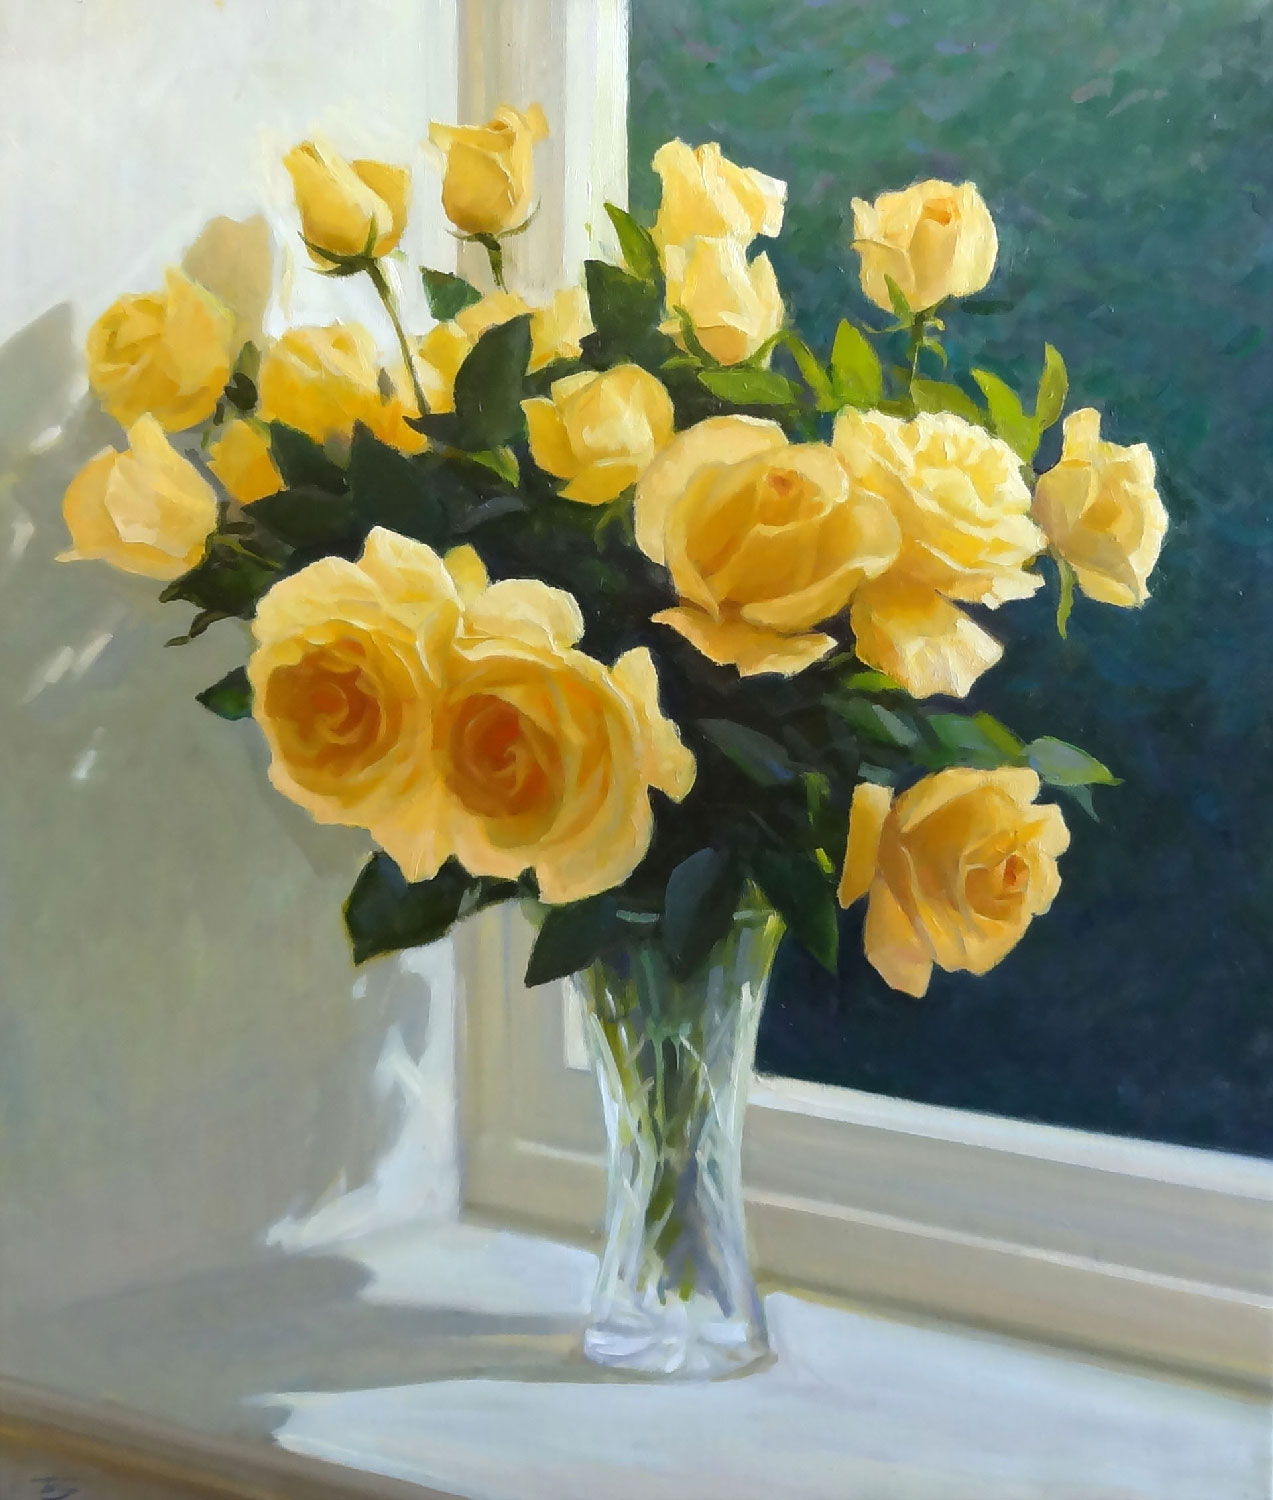 YELLOW ROSES  oil, 23 x 27 in.